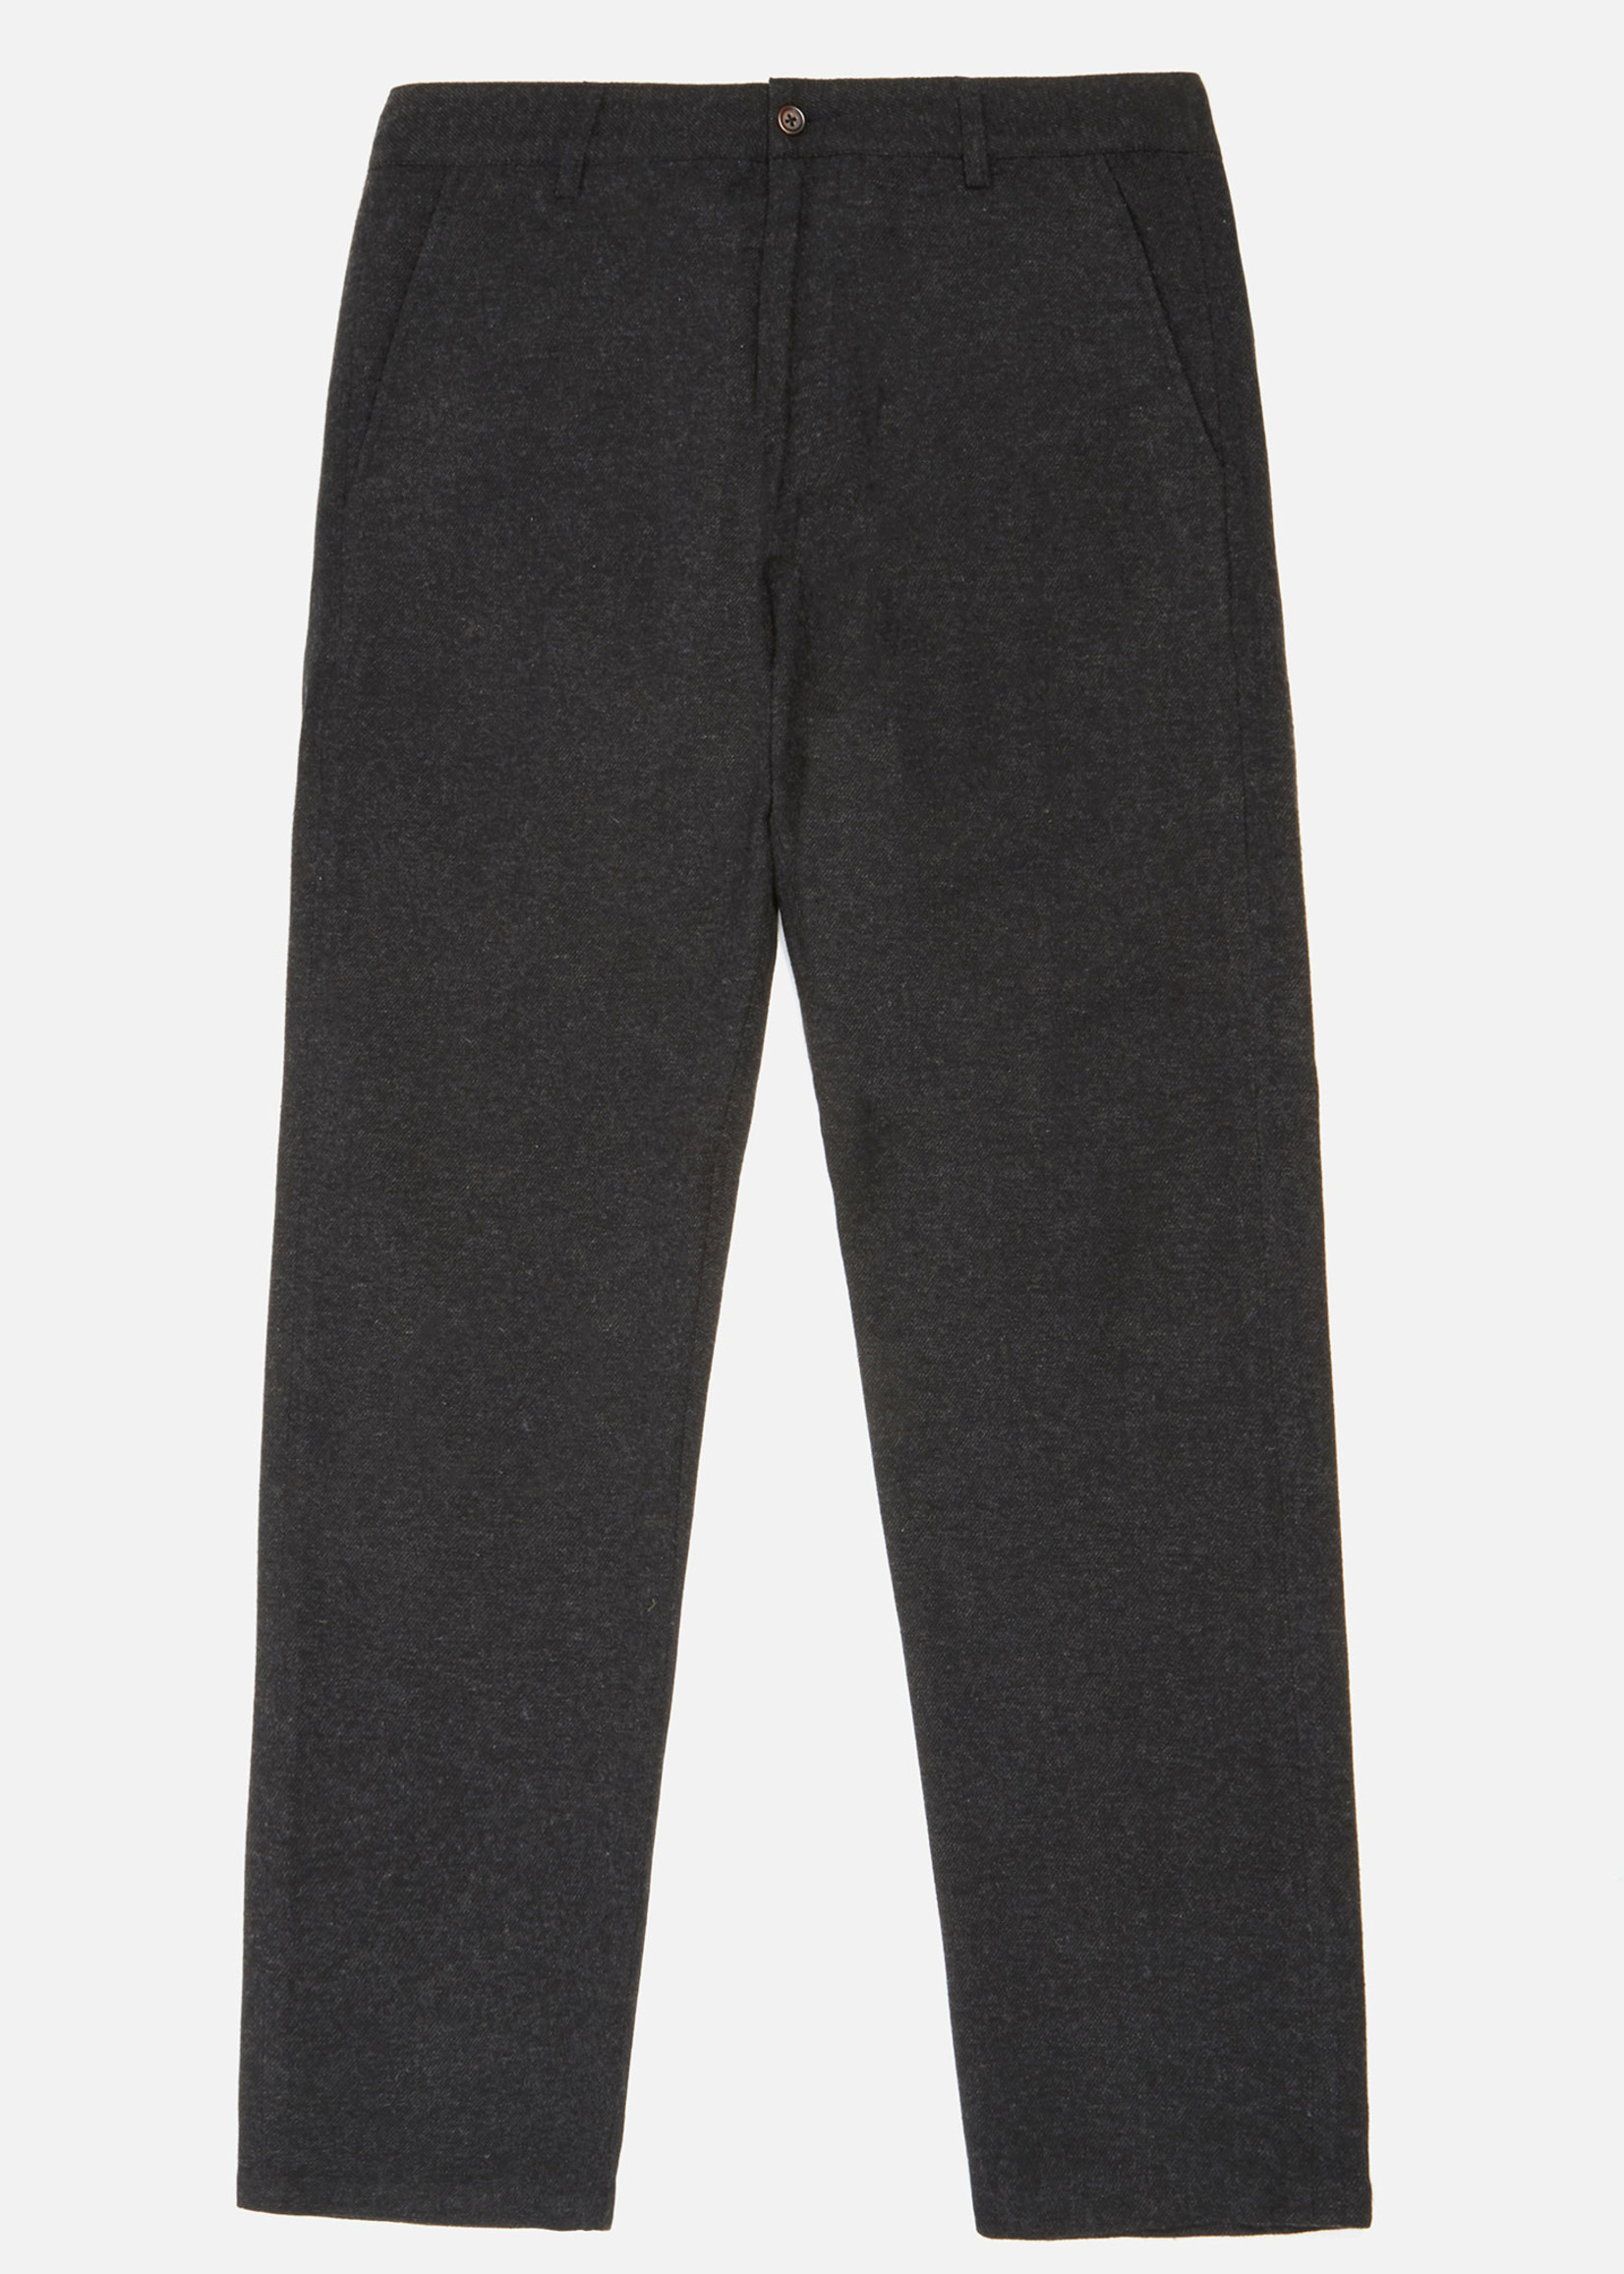 Universal Works Aston Pant in Charcoal Wool/Poly by Universal Works